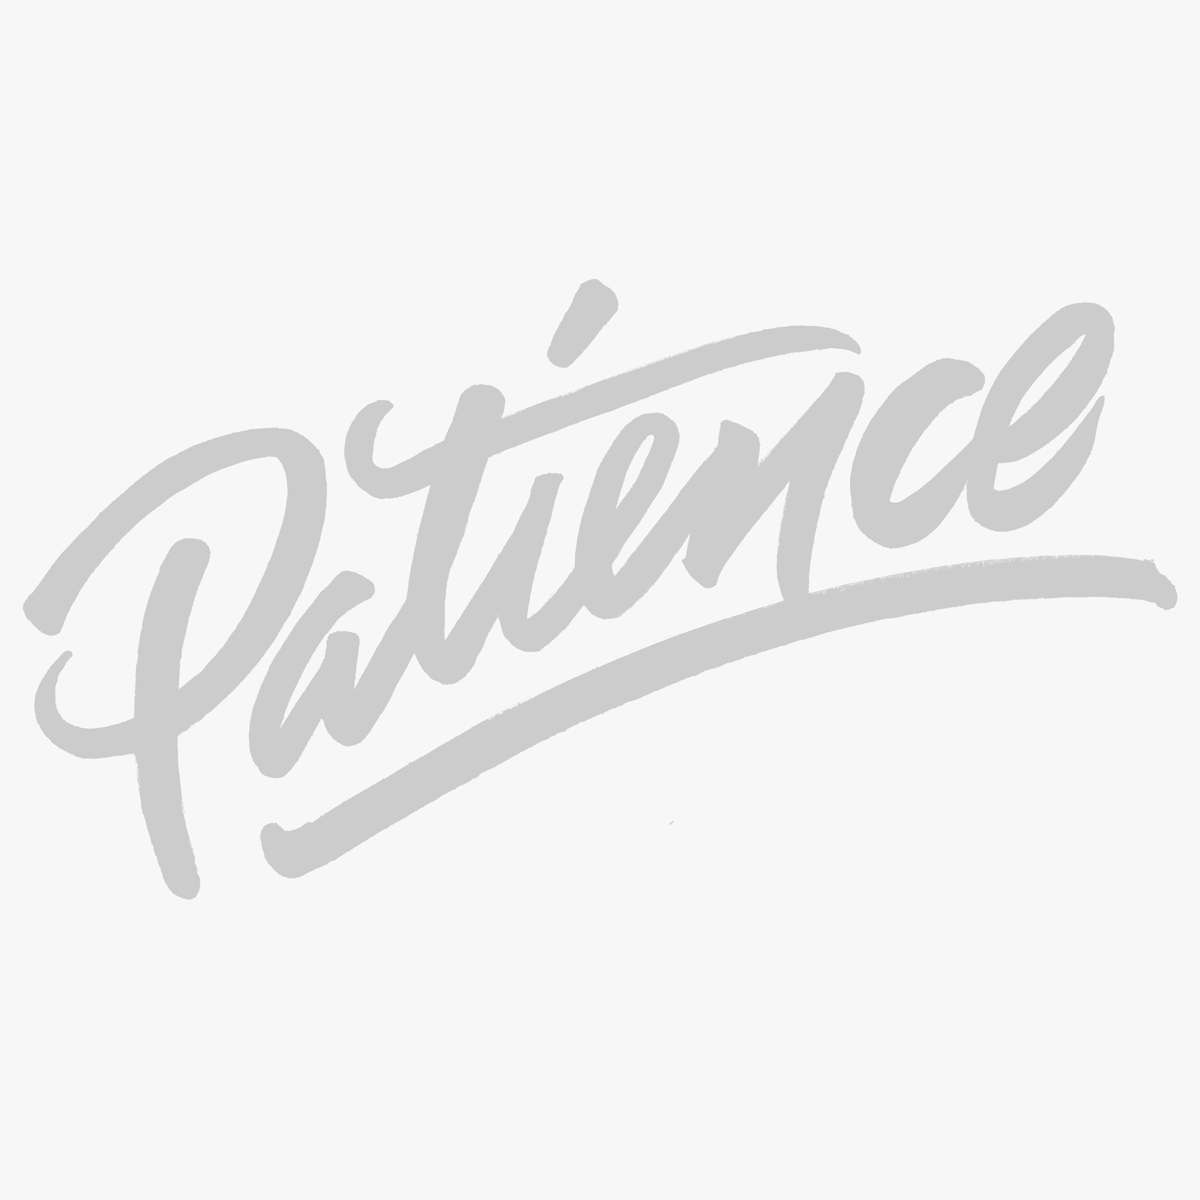 116-patience.png